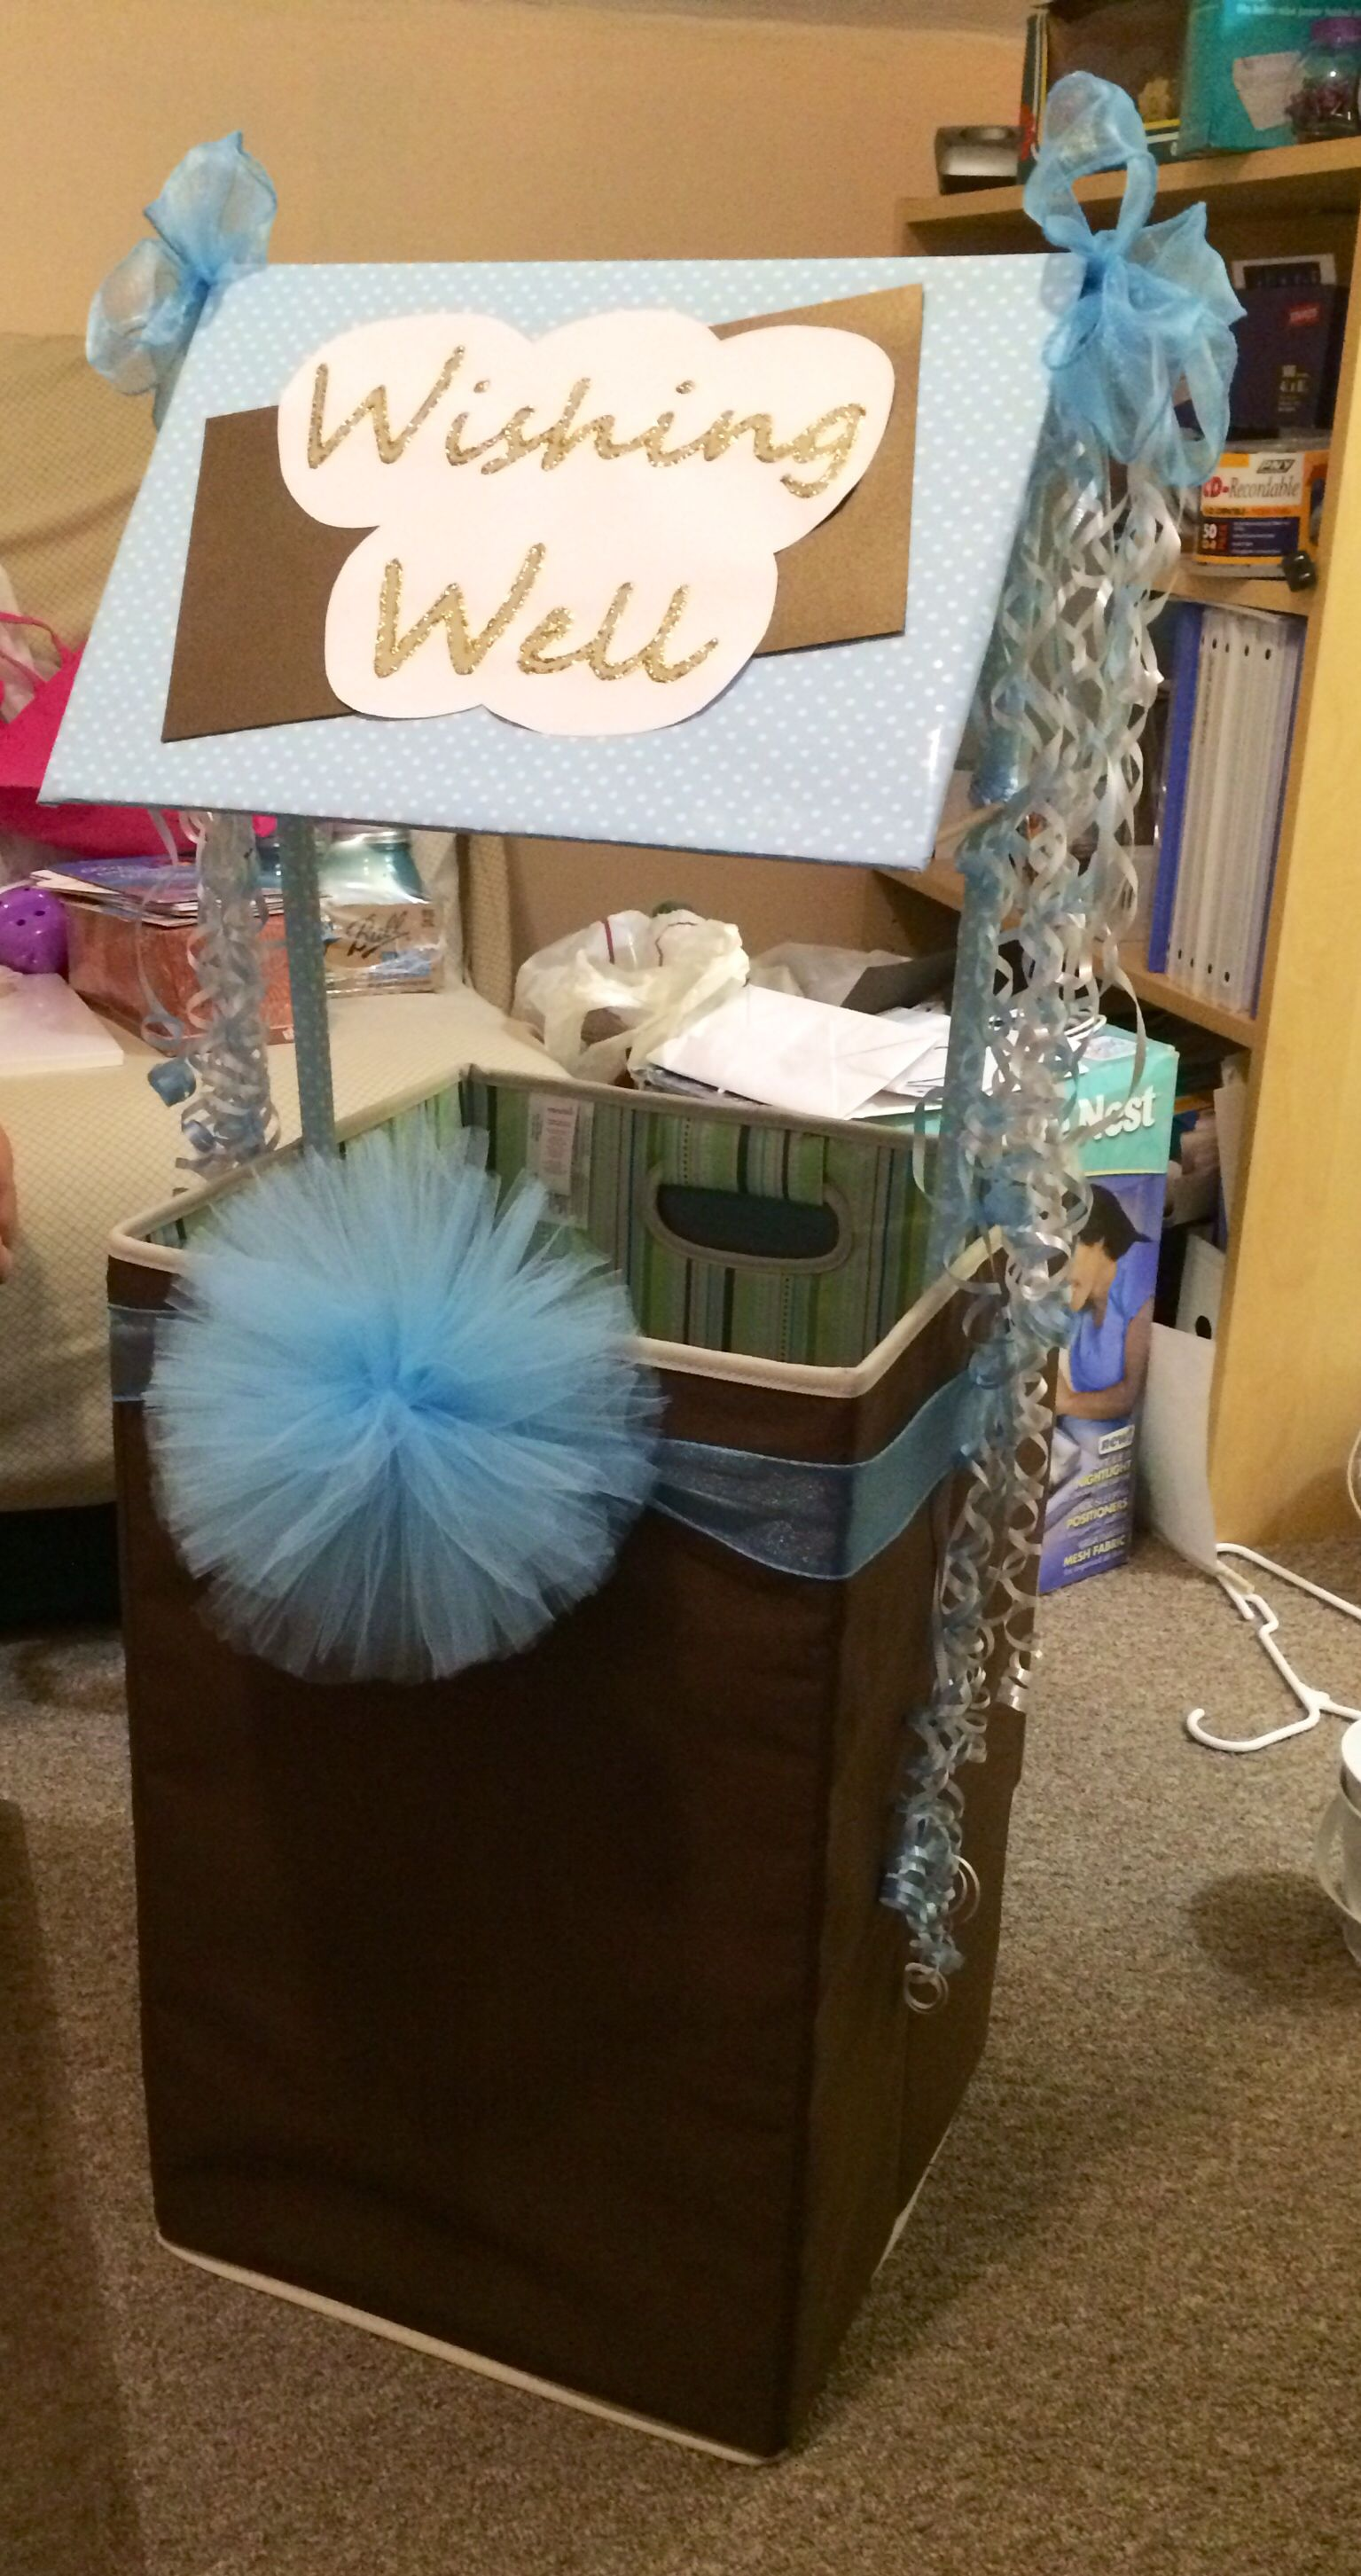 Baby shower wishing well made with hamper